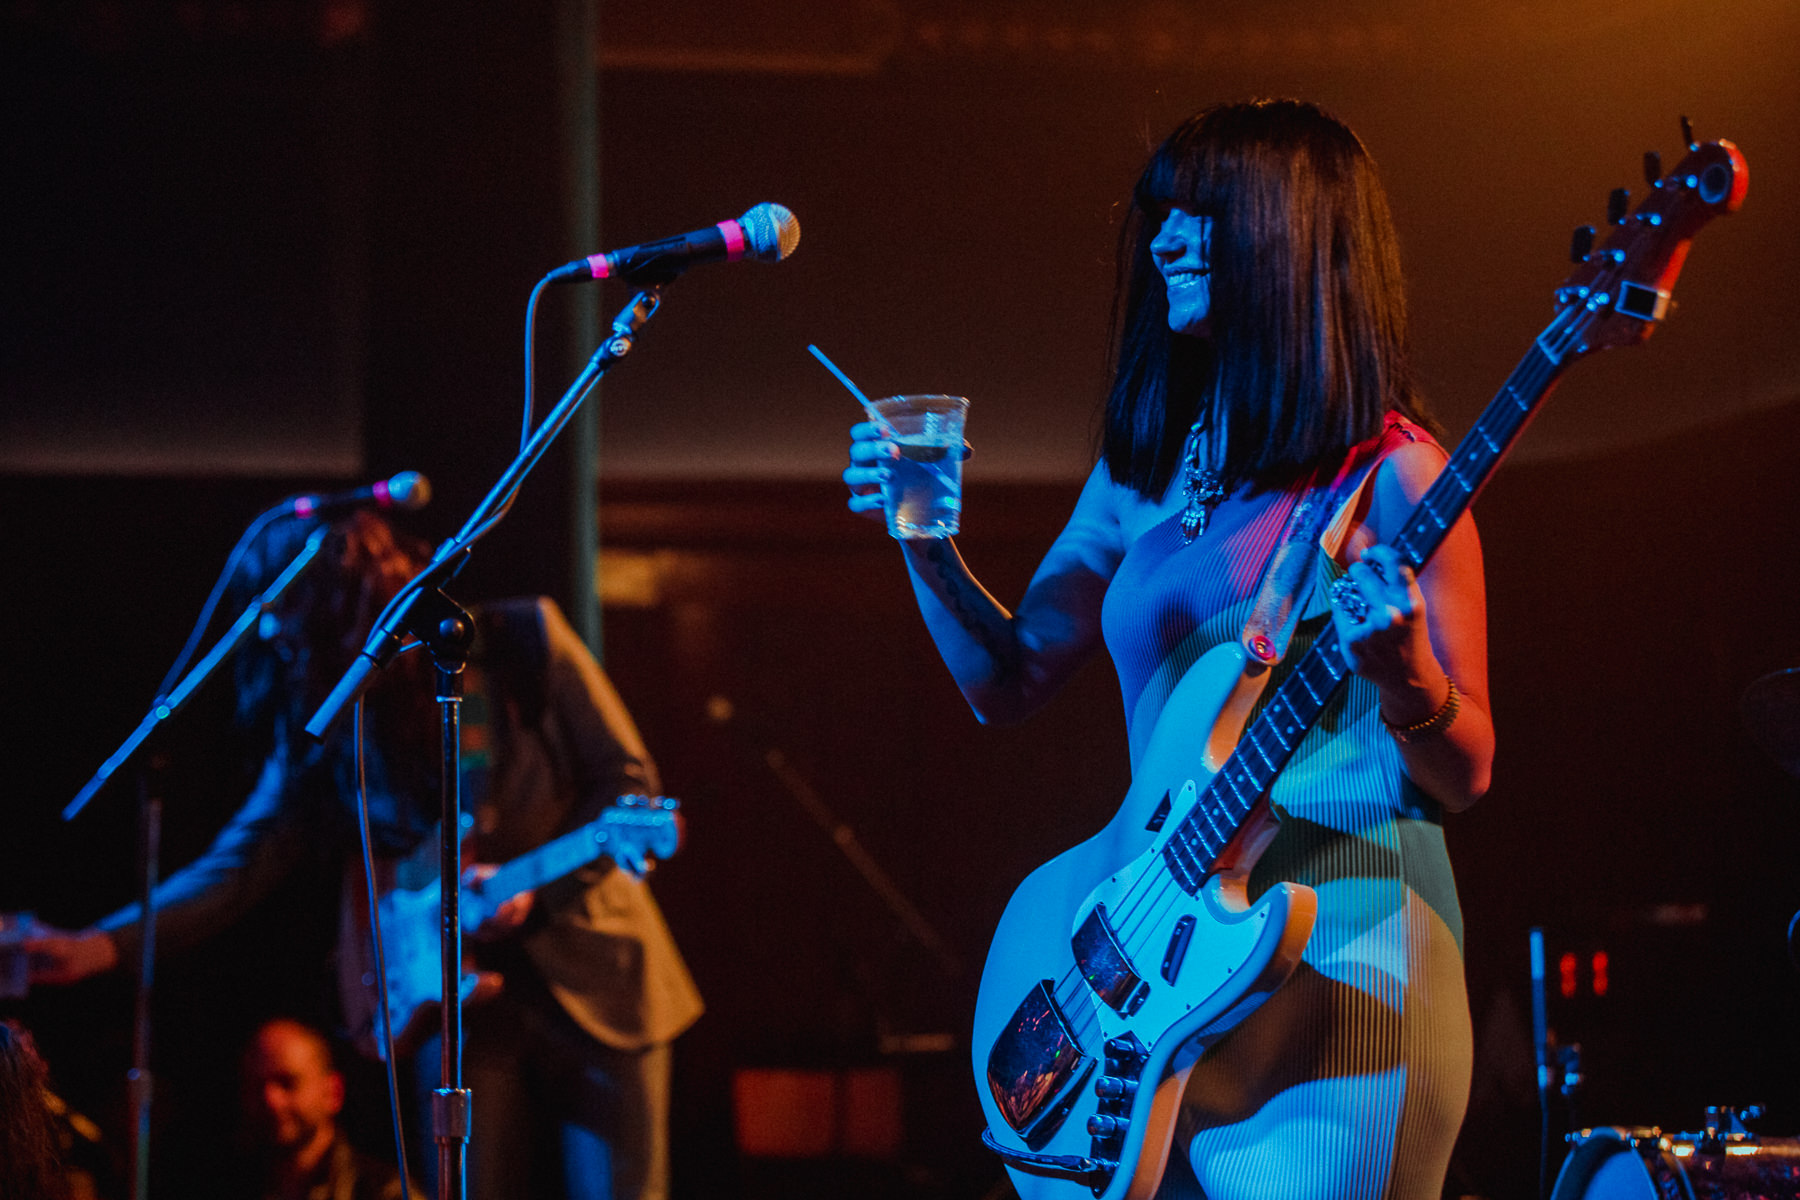 180326-kirby-gladstein-photograpy-khruangbin-concert-lodge-room-los-angeles-2705.jpg